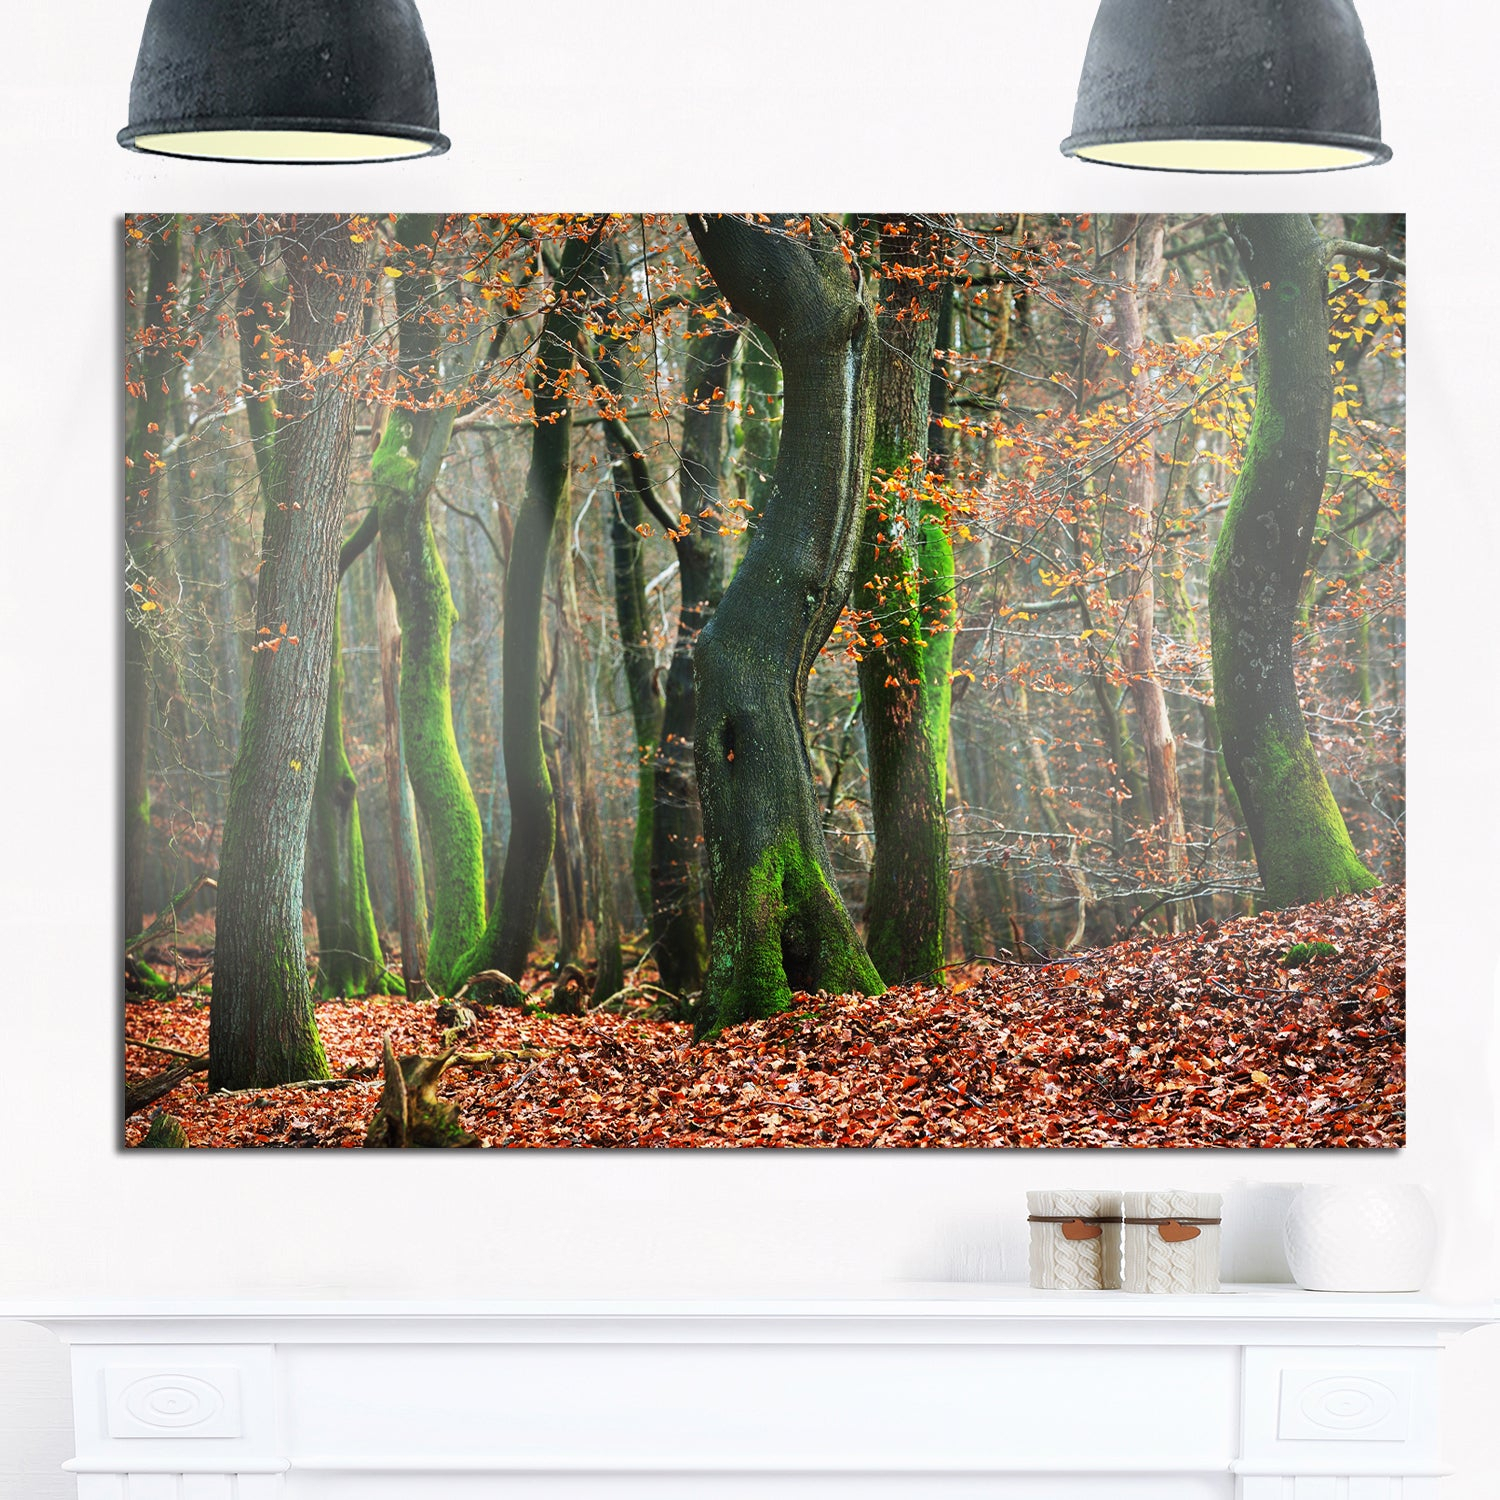 Most Current Shop Autumn Forest In The Netherlands – Landscape Photo Glossy Metal With Regard To Contemporary Forest Metal Wall Decor (View 9 of 20)